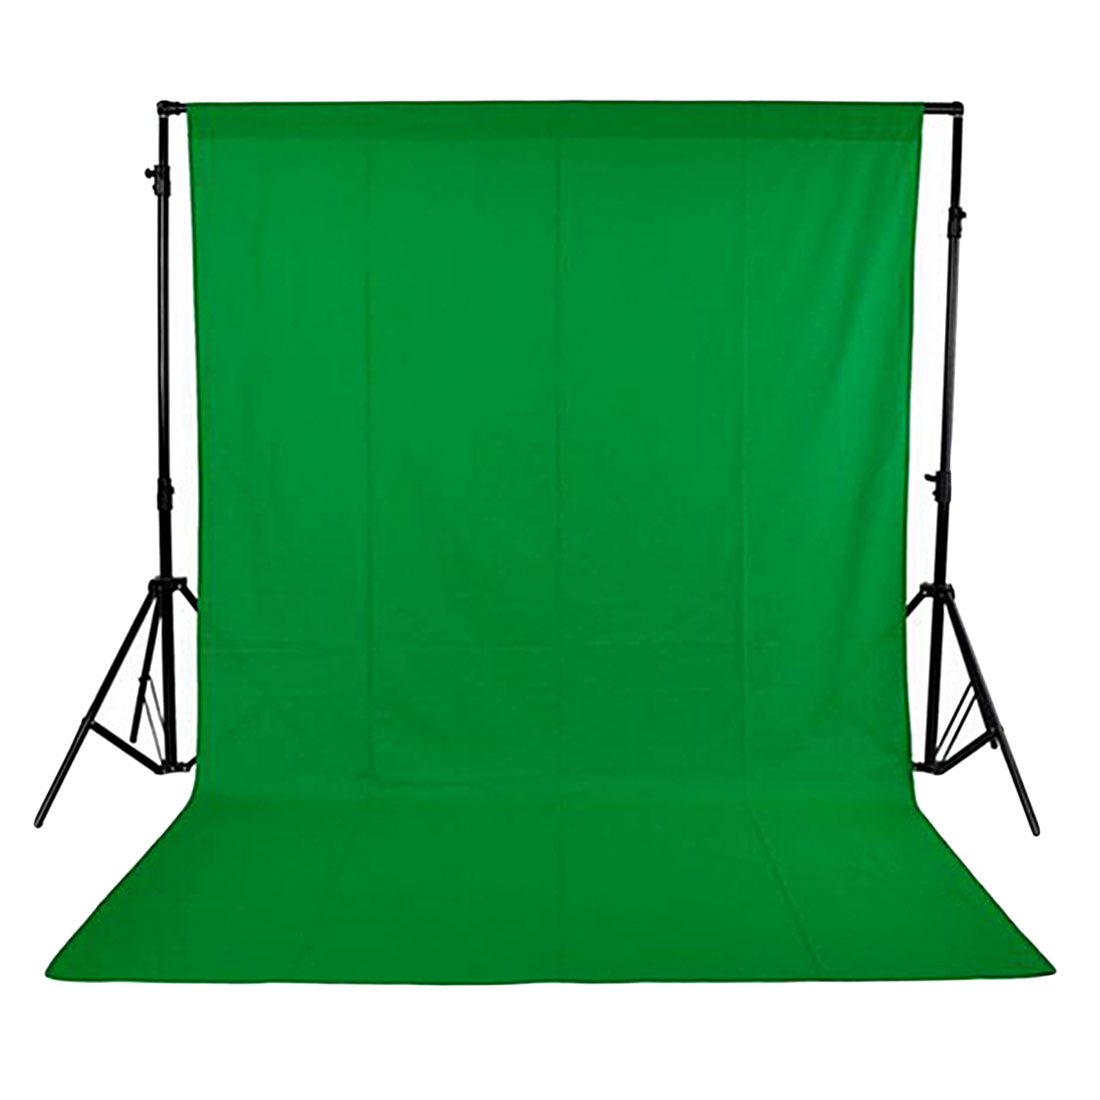 centechia Photography Backdrops Non-woven Studio Photo Background Green screen Black White fotografia 1.8*2.7m/5.9*8.8ft 5 x 10ft vinyl photography background for studio photo props green screen photographic backdrops non woven 160 x 300cm